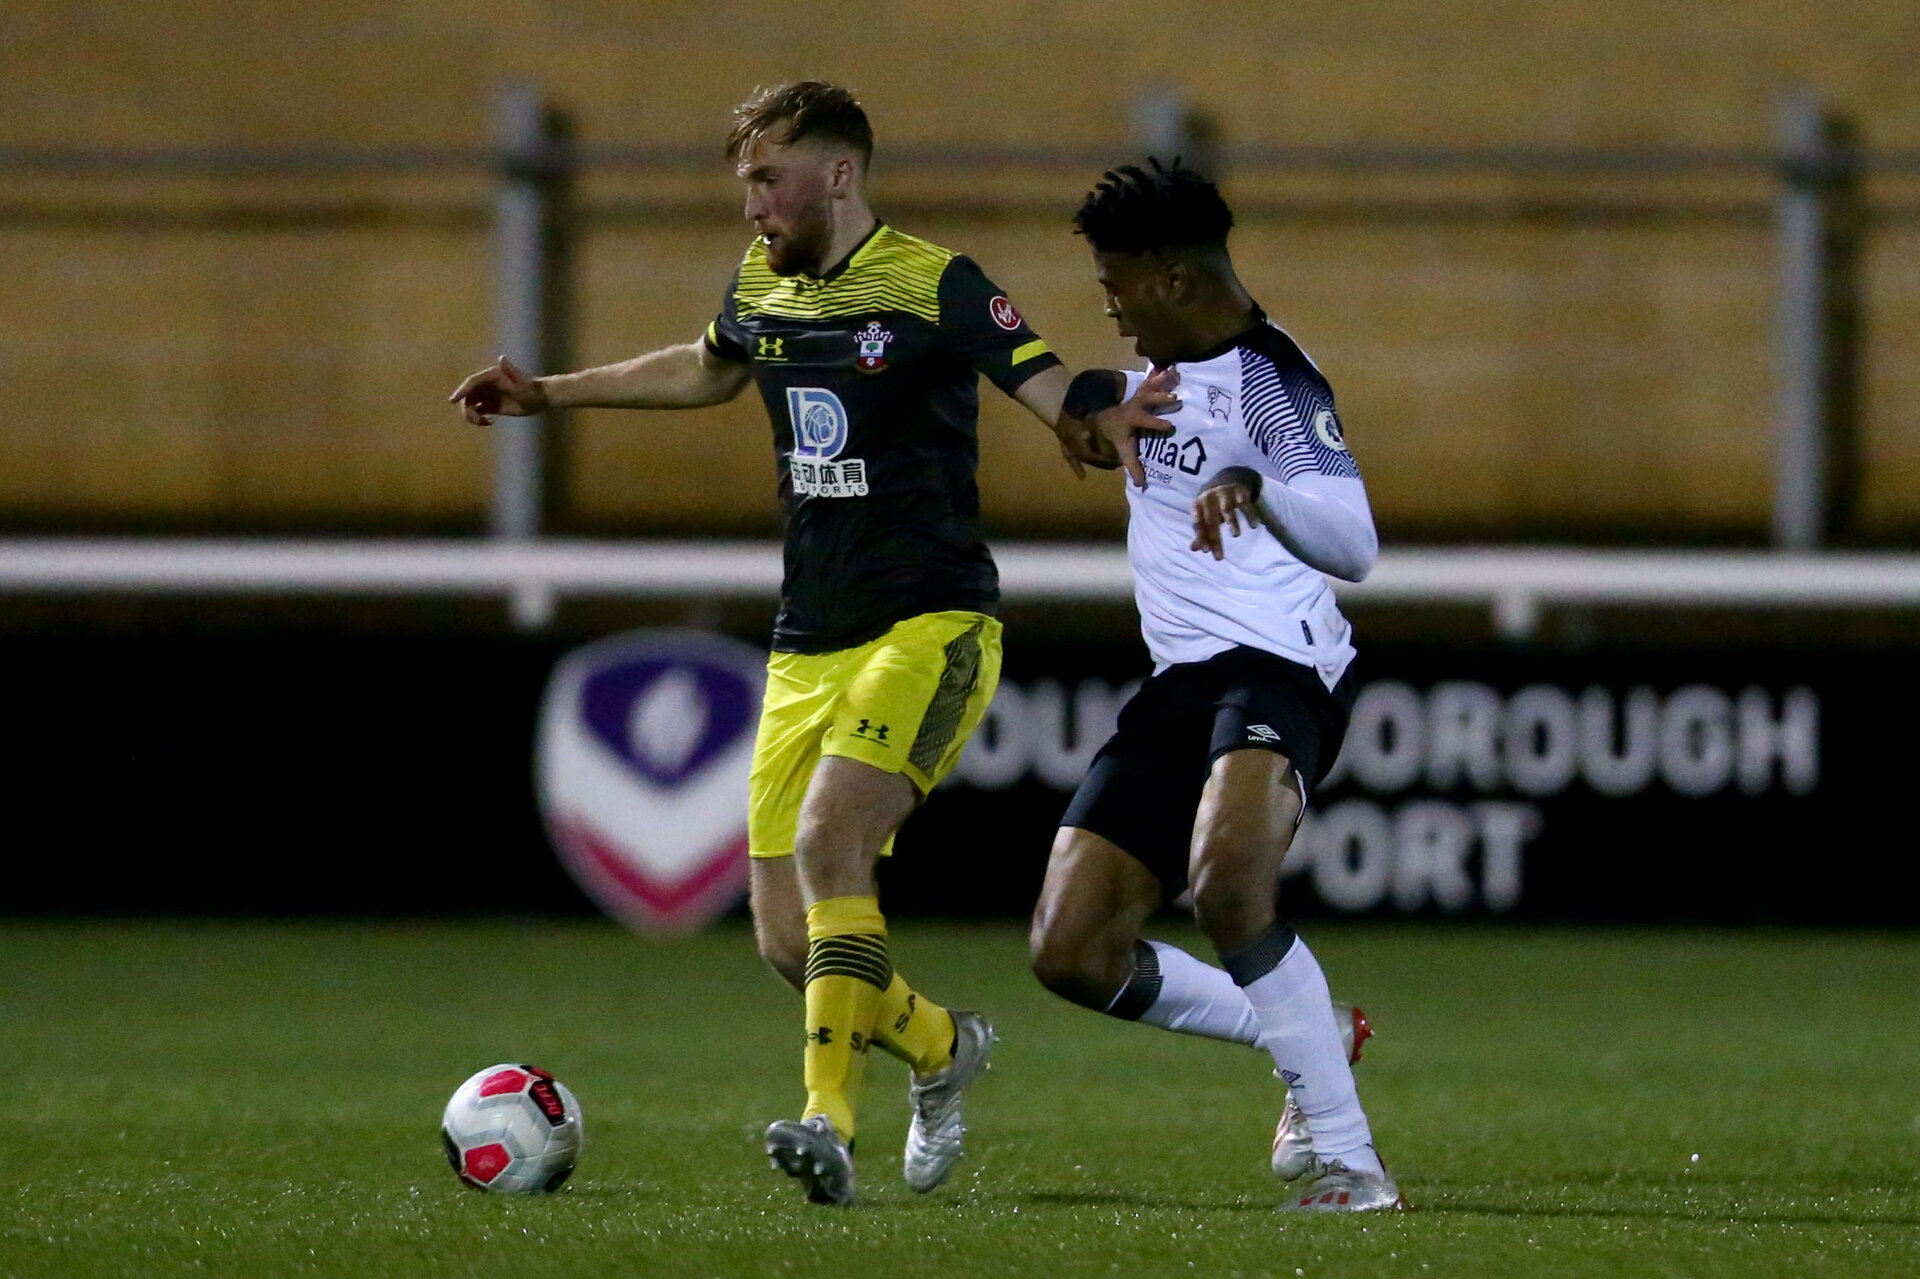 LOUGHBOUROUGH, ENGLAND - DECEMBER 10: Aaron O'Driscoll during Premier League International Cup match between Derby County and Southampton at Loughborough University Stadium on December 10 2019 in Loughborough, England (Photo by Isabelle Field/Southampton FC via Getty Images)